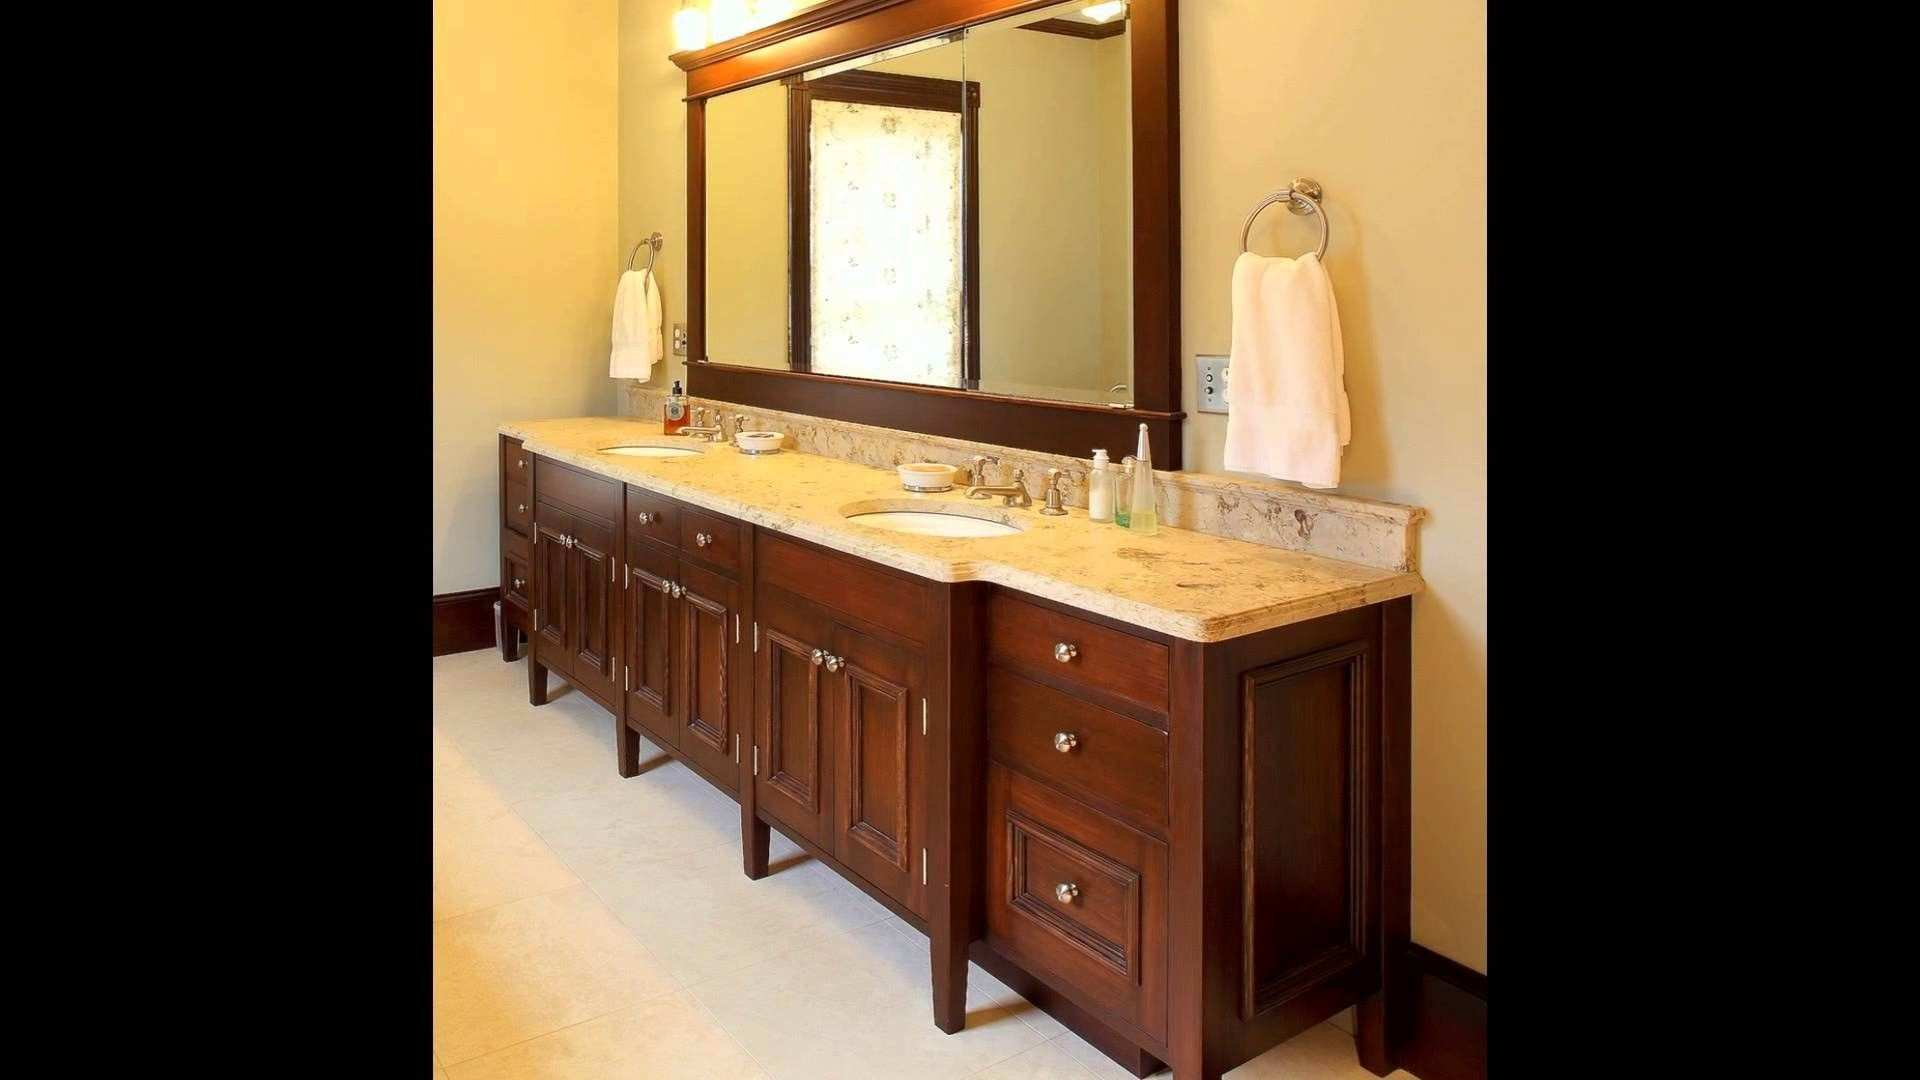 Free Download Image Awesome Oval Bathroom Mirrors 650366 Oval